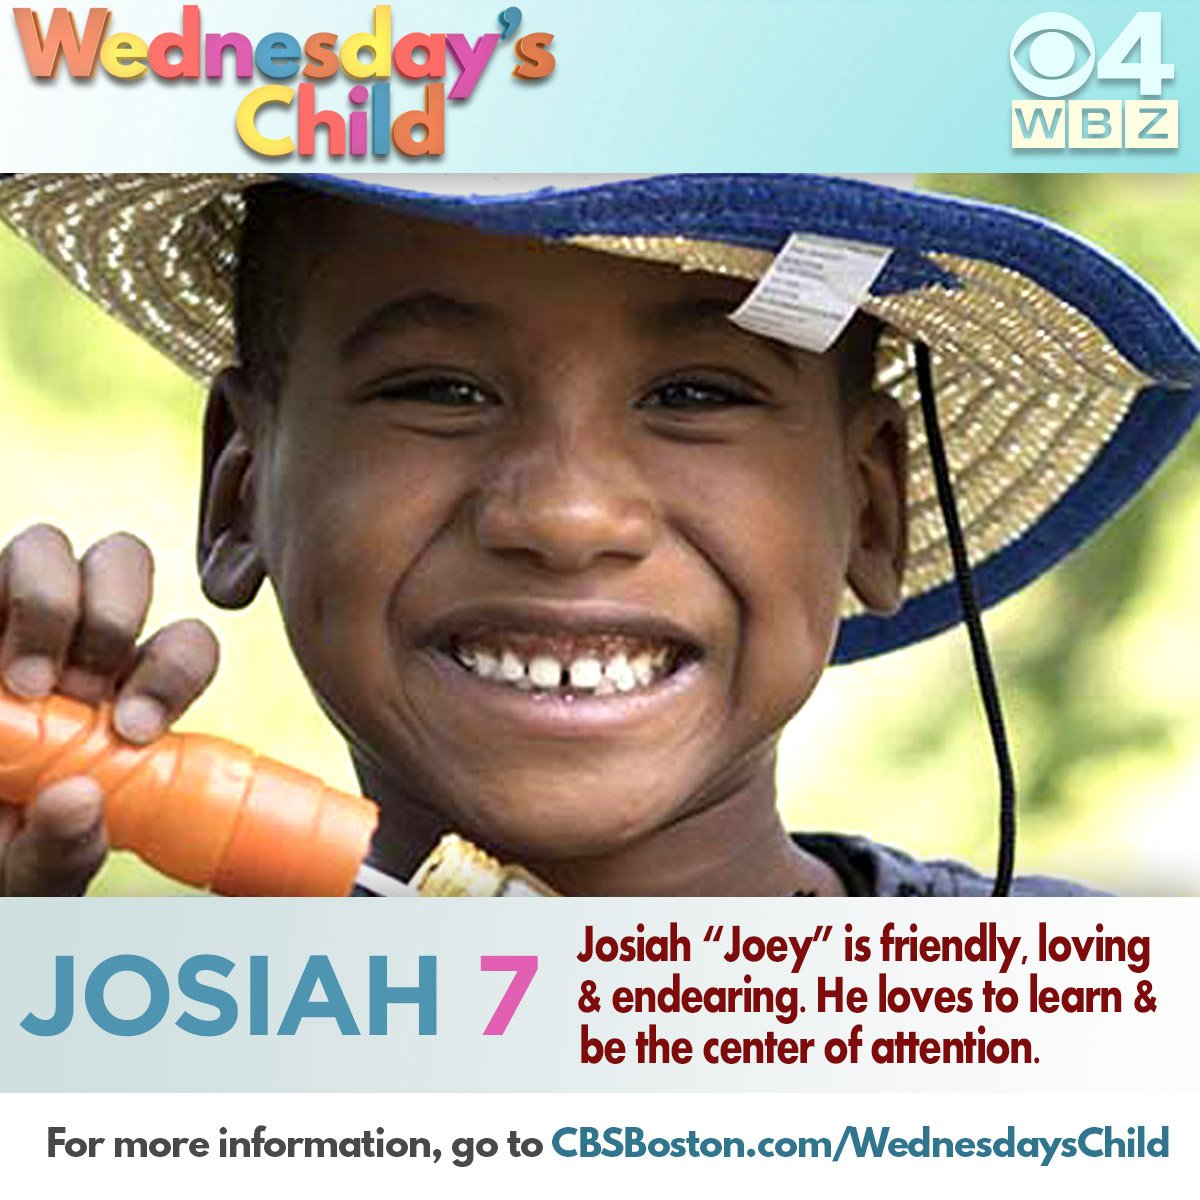 Those who know Josiah best say he's friendly, loving, and endearing. Can you help spread the word so he can find his forever family? cbsloc.al/2Mk2ZS8 #WednesdaysChild